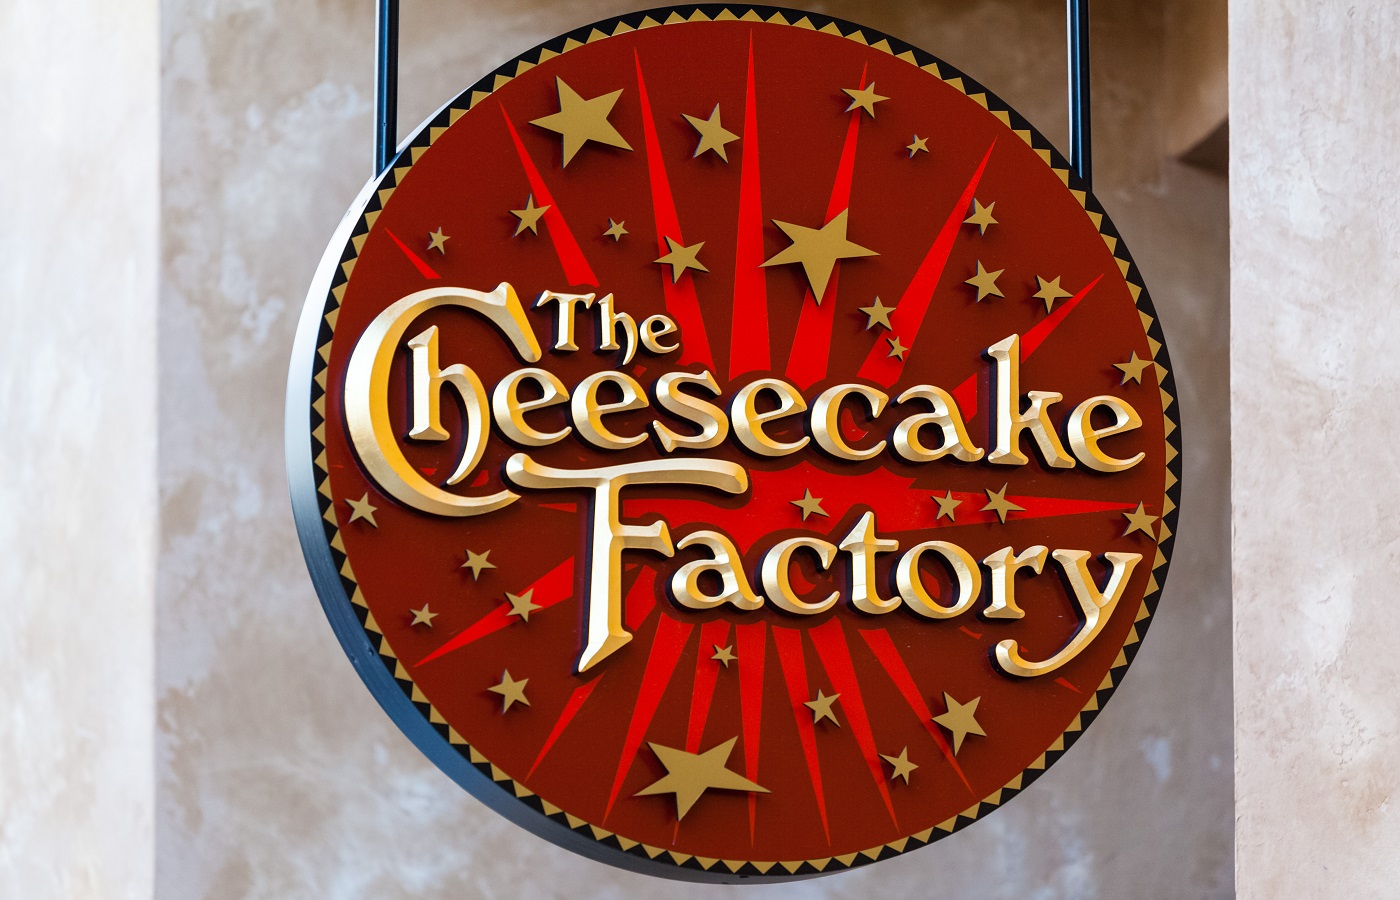 The Cheesecake factory signage